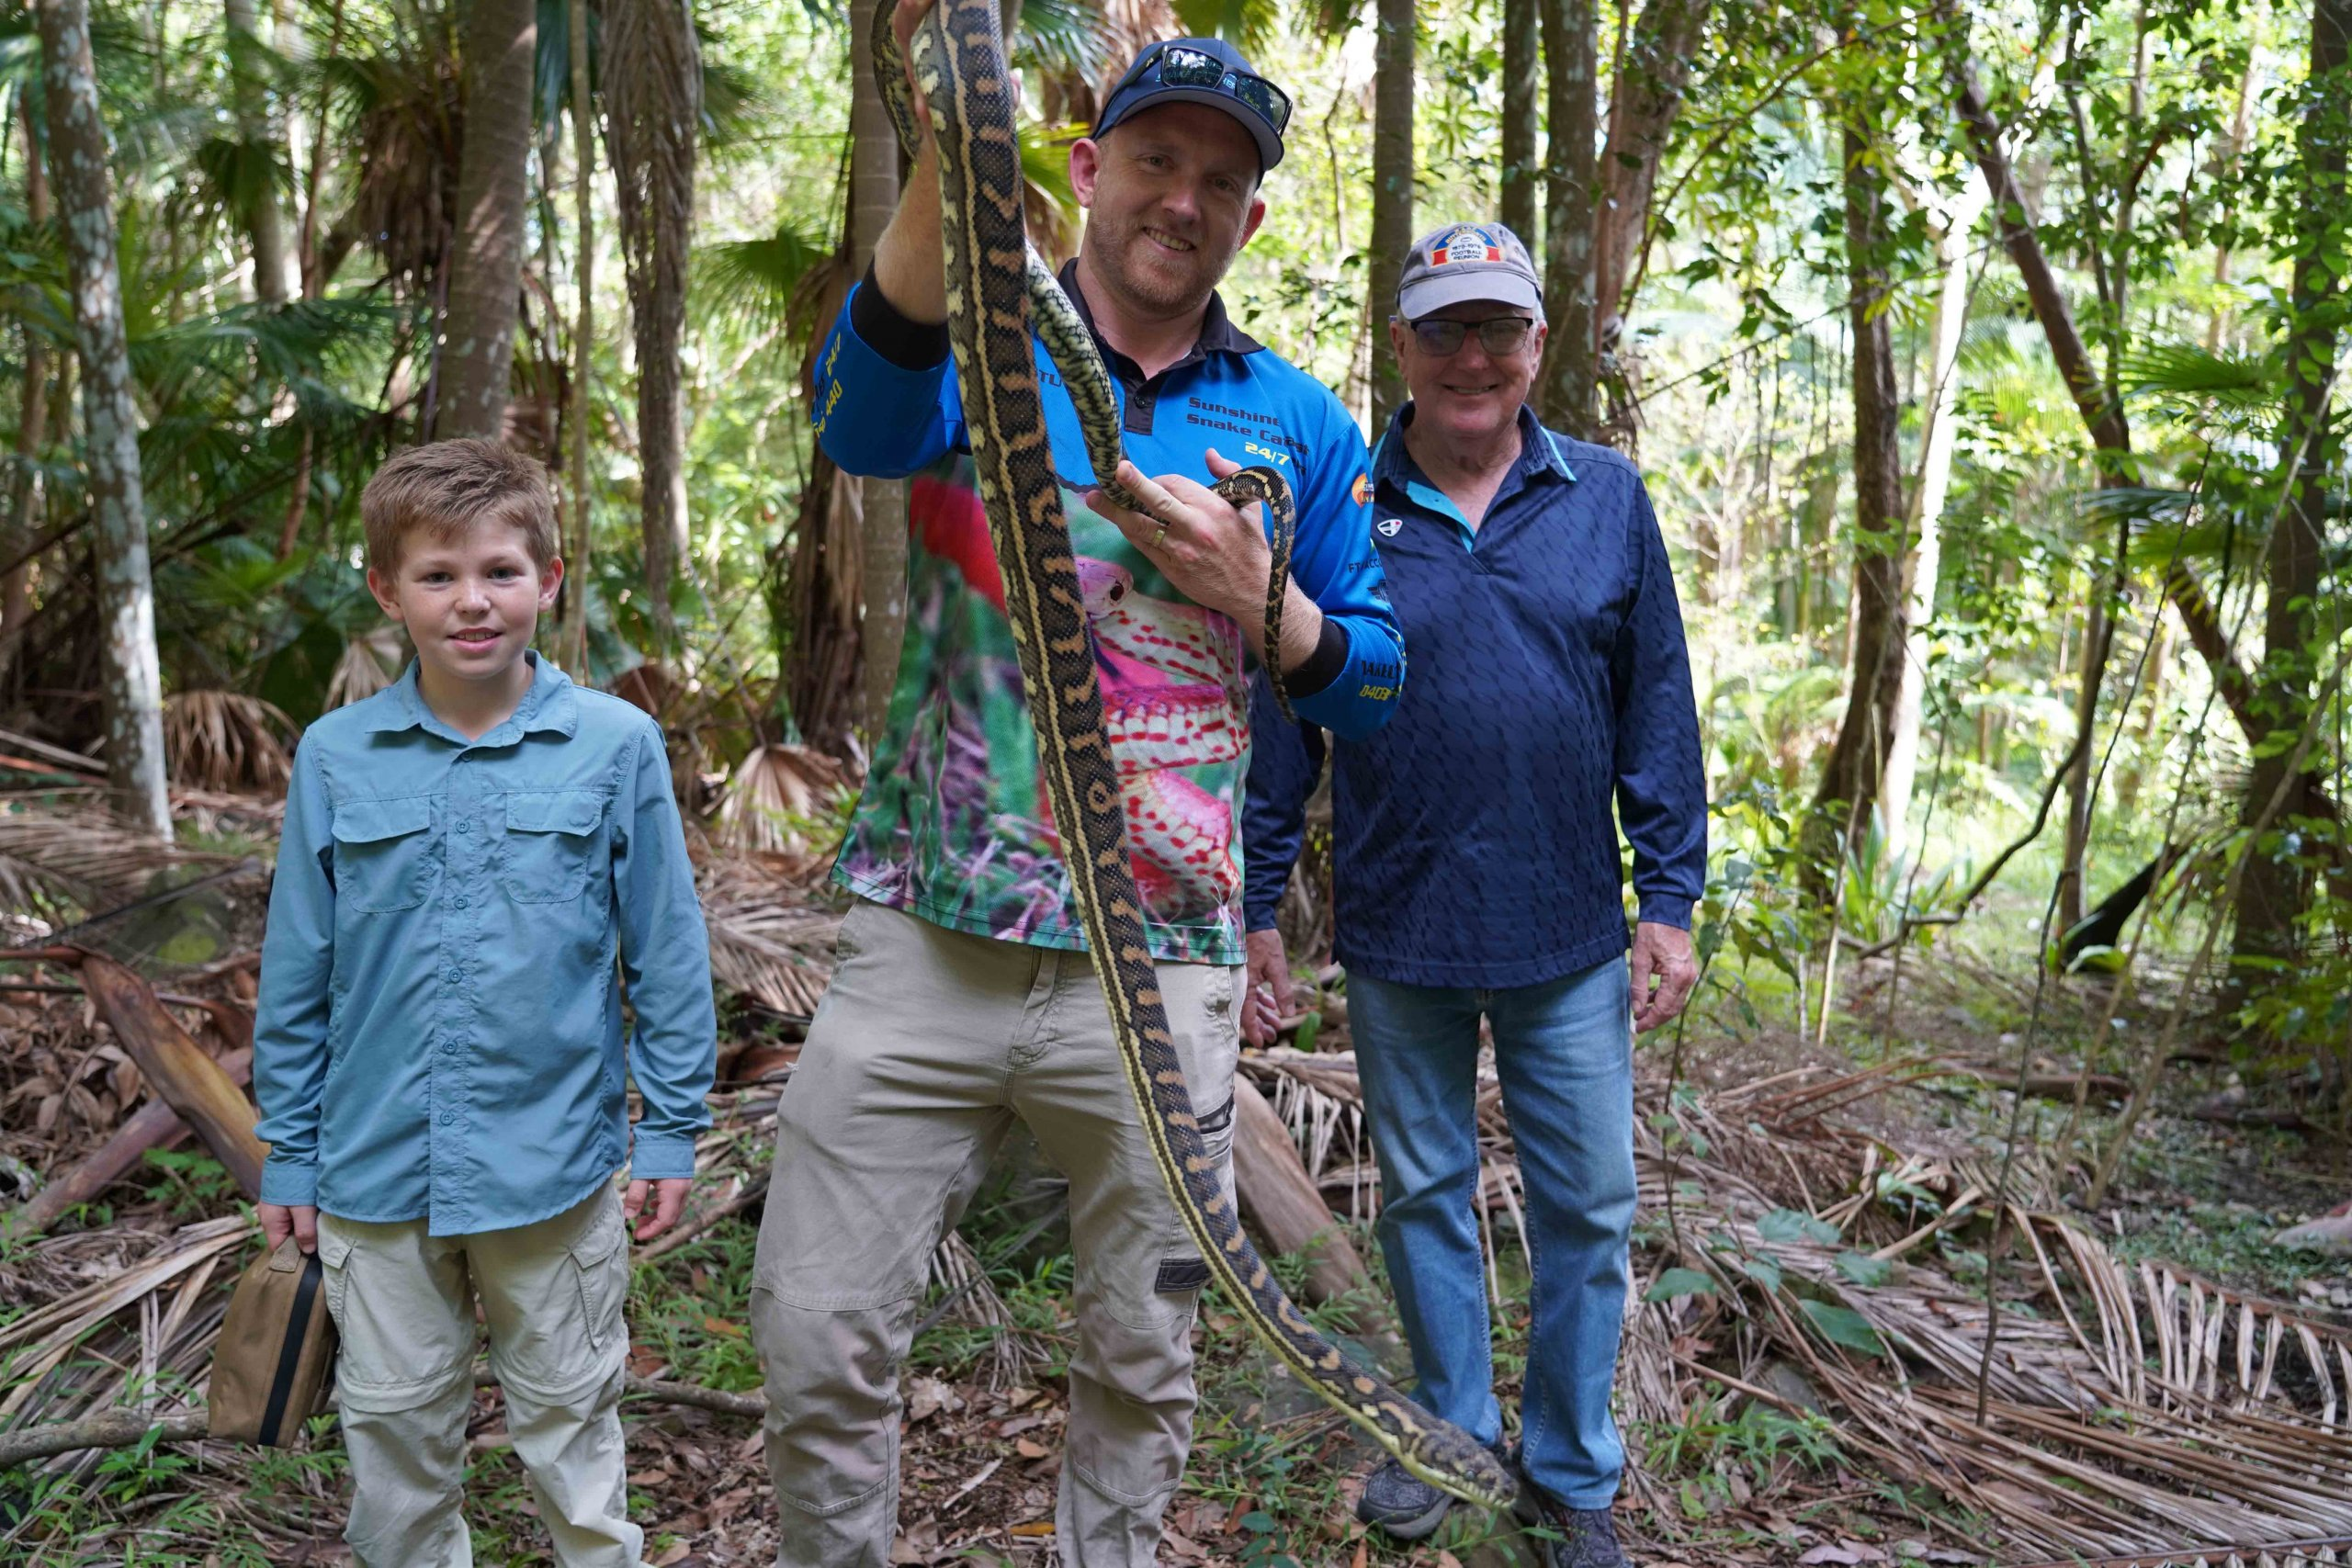 On a snake catching tour with Stu and the team holding carpet python